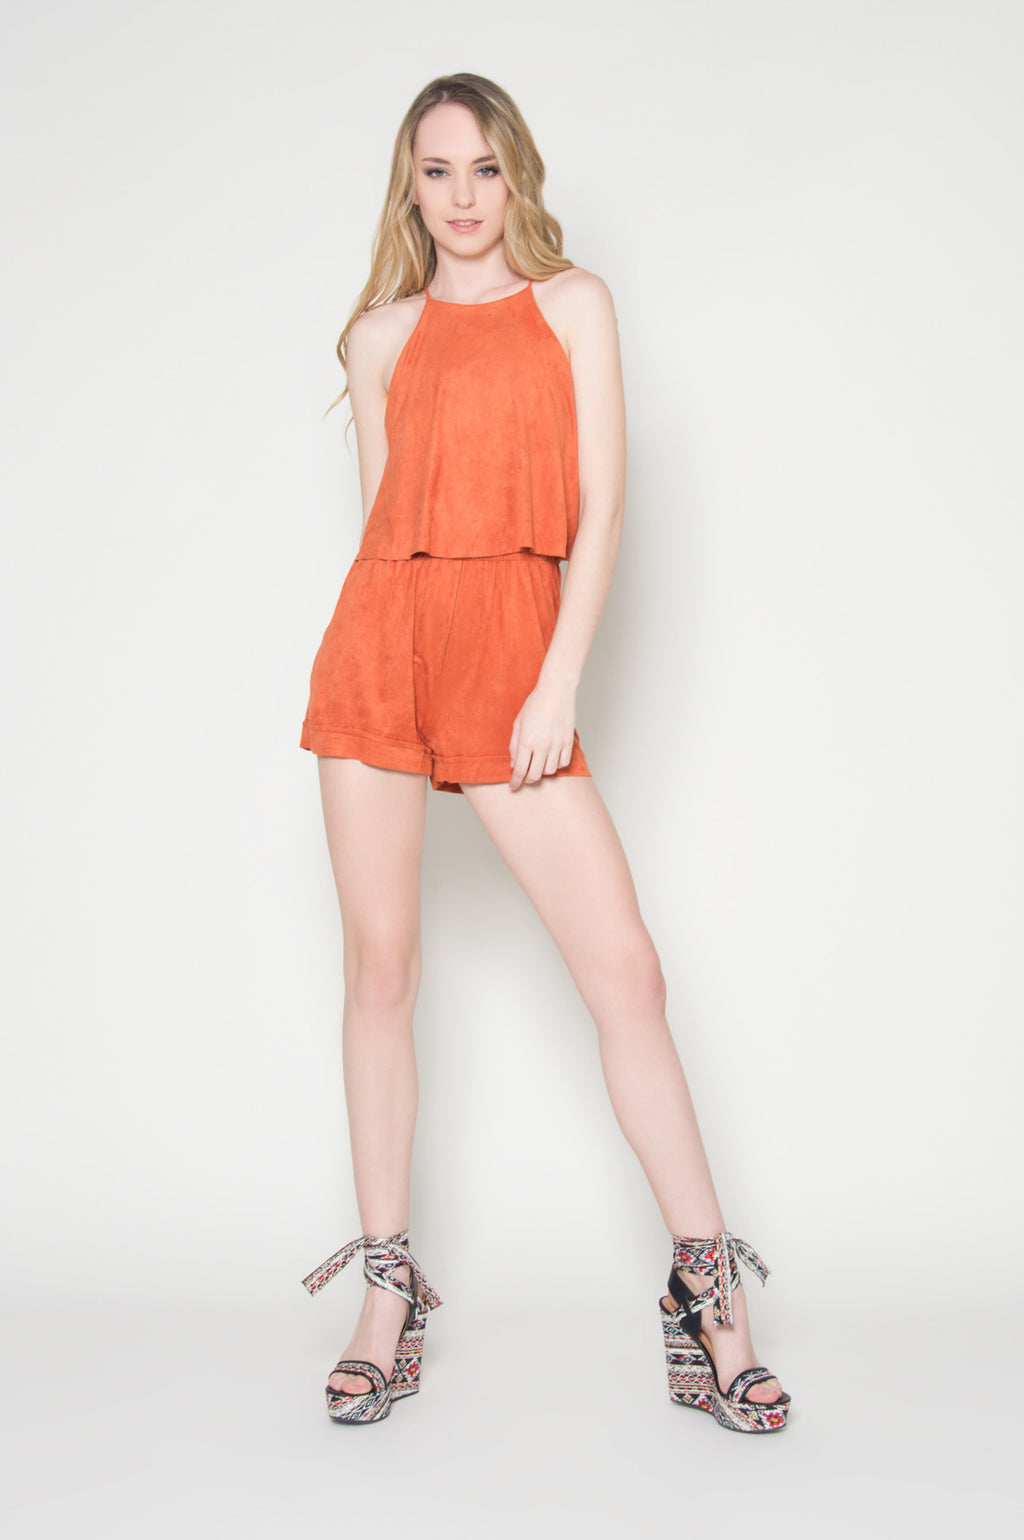 Foxy faux suede double layer romper, Rompers